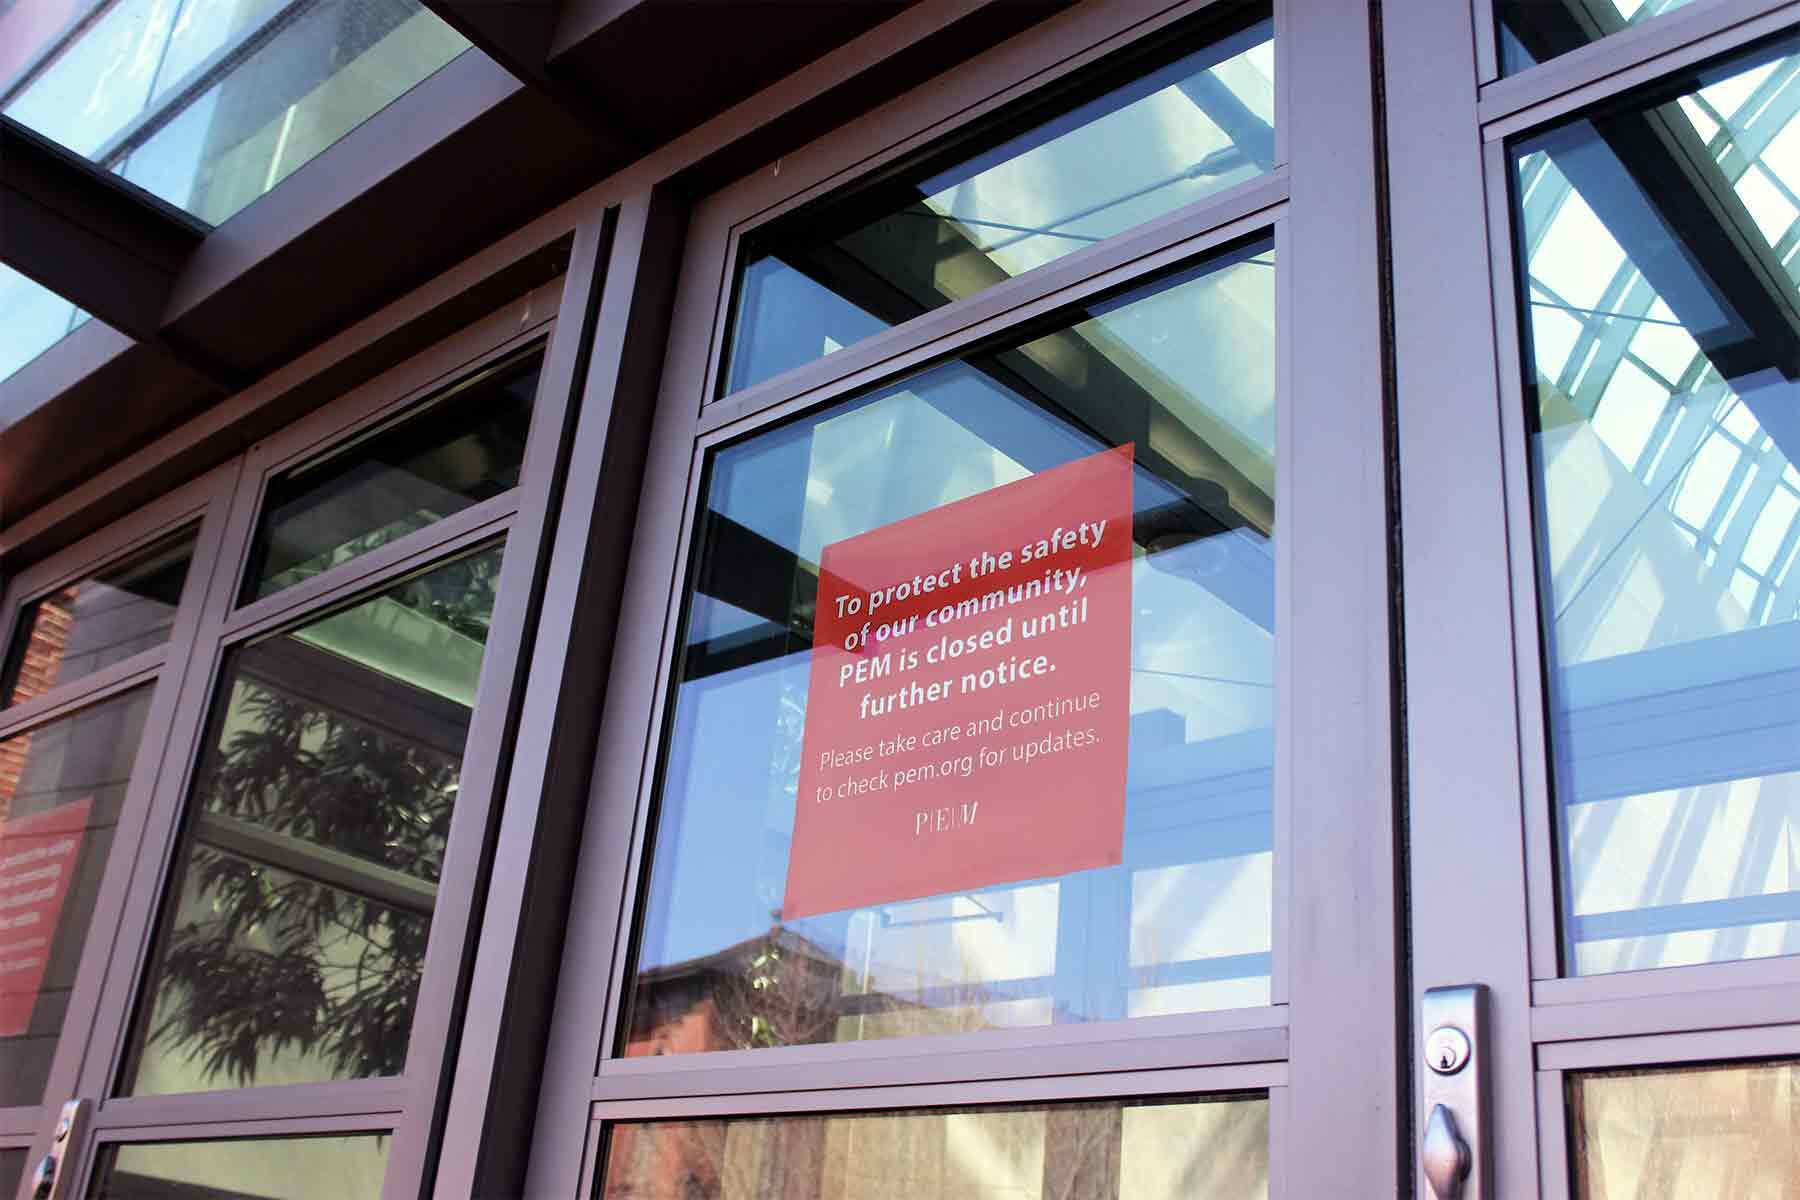 Glass front doors of PEM with sign that says -To protect the safety of our community PEM is closed until further notice